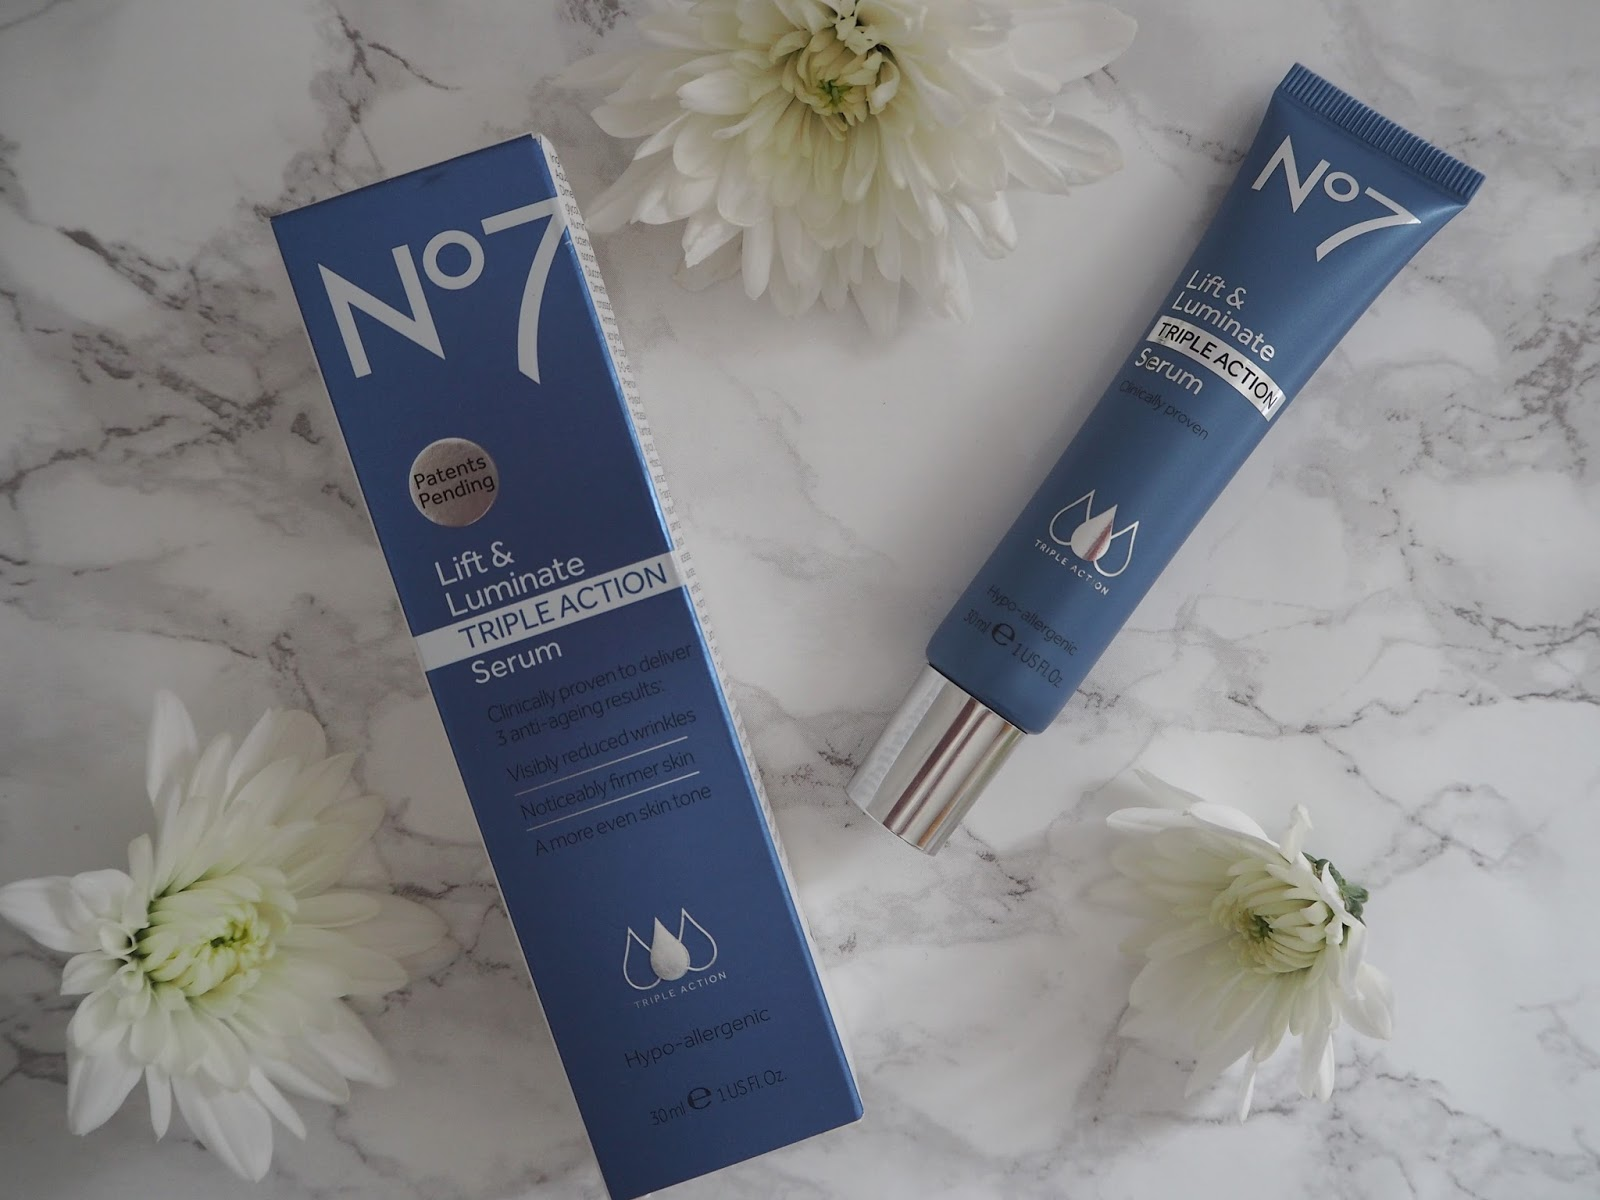 Review of Boots No 7 serums, generations